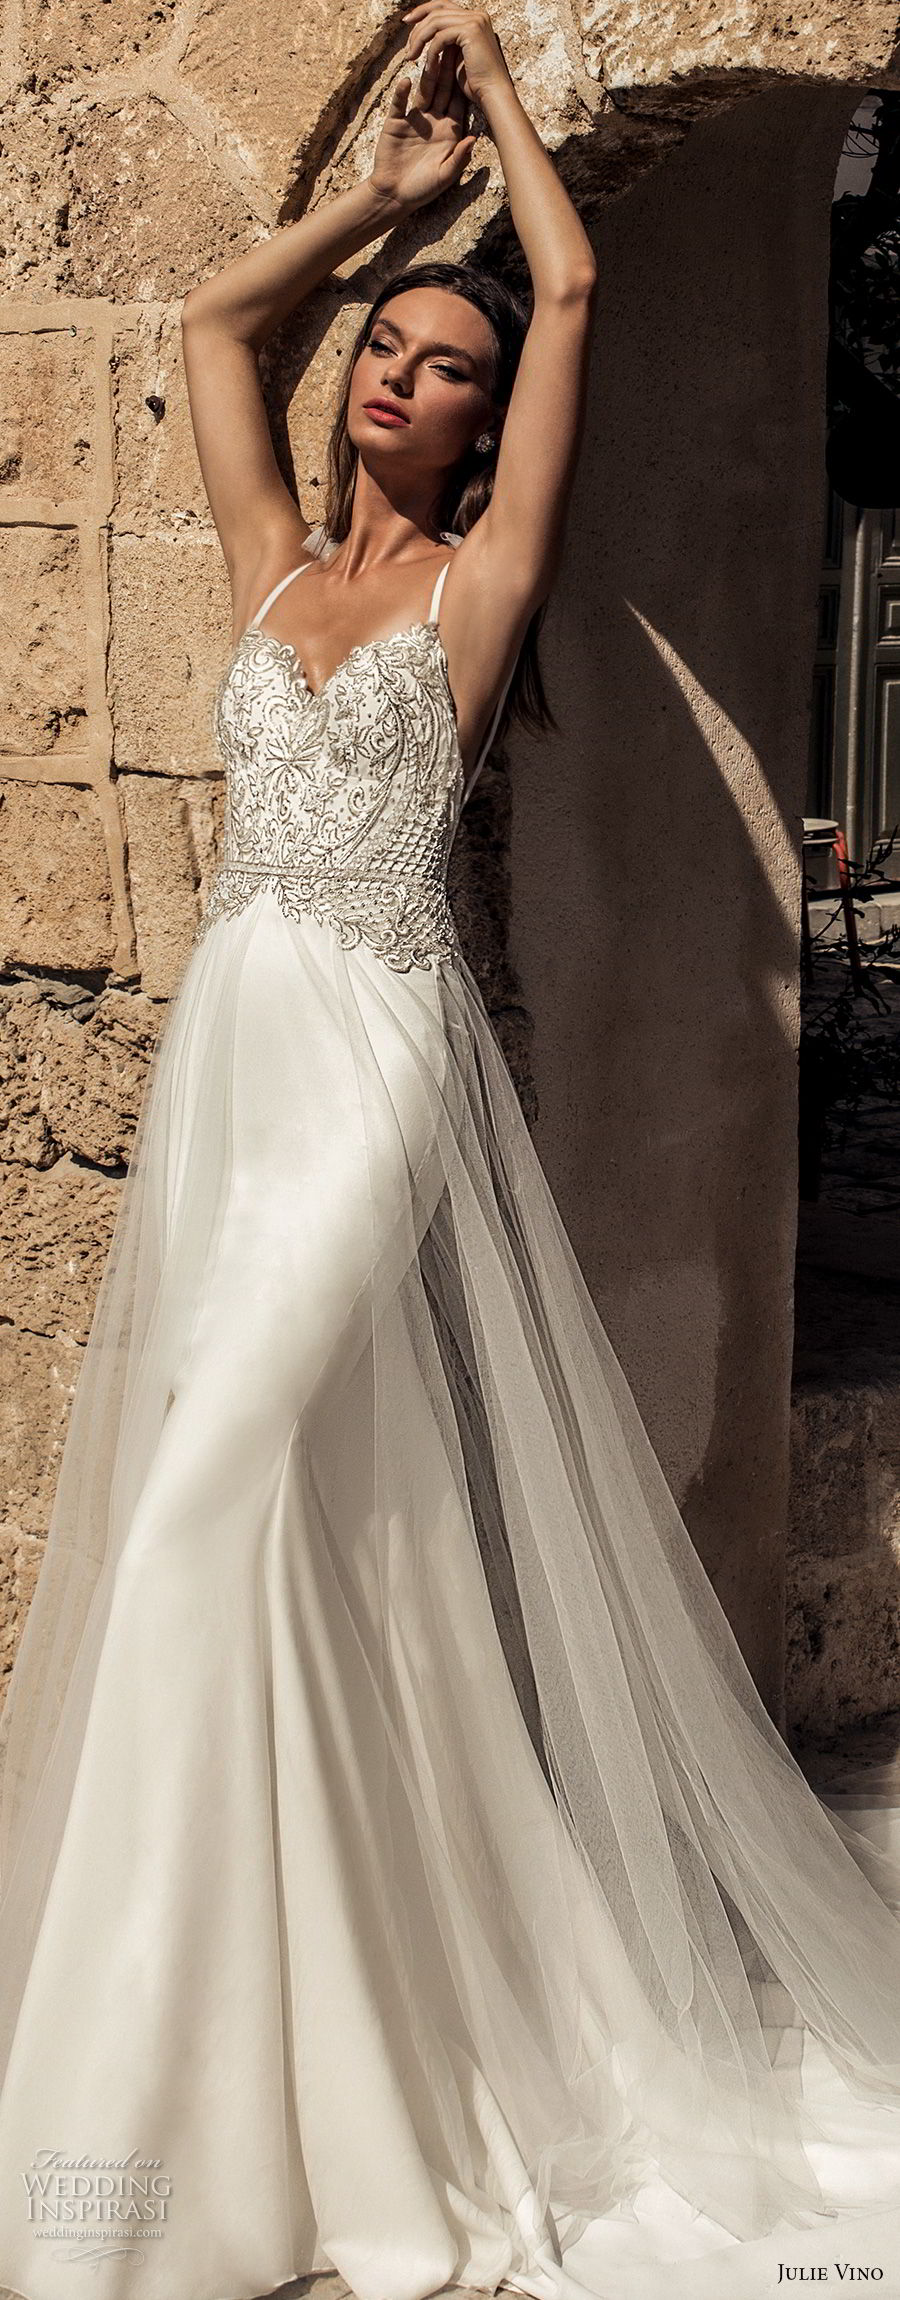 julie vino 2018 bridal thin strap sweetheart neckline heavily embellished bodice glamorous elegant sheath fit and flare wedding dress a  line overskirt open back chapel train (57) lv